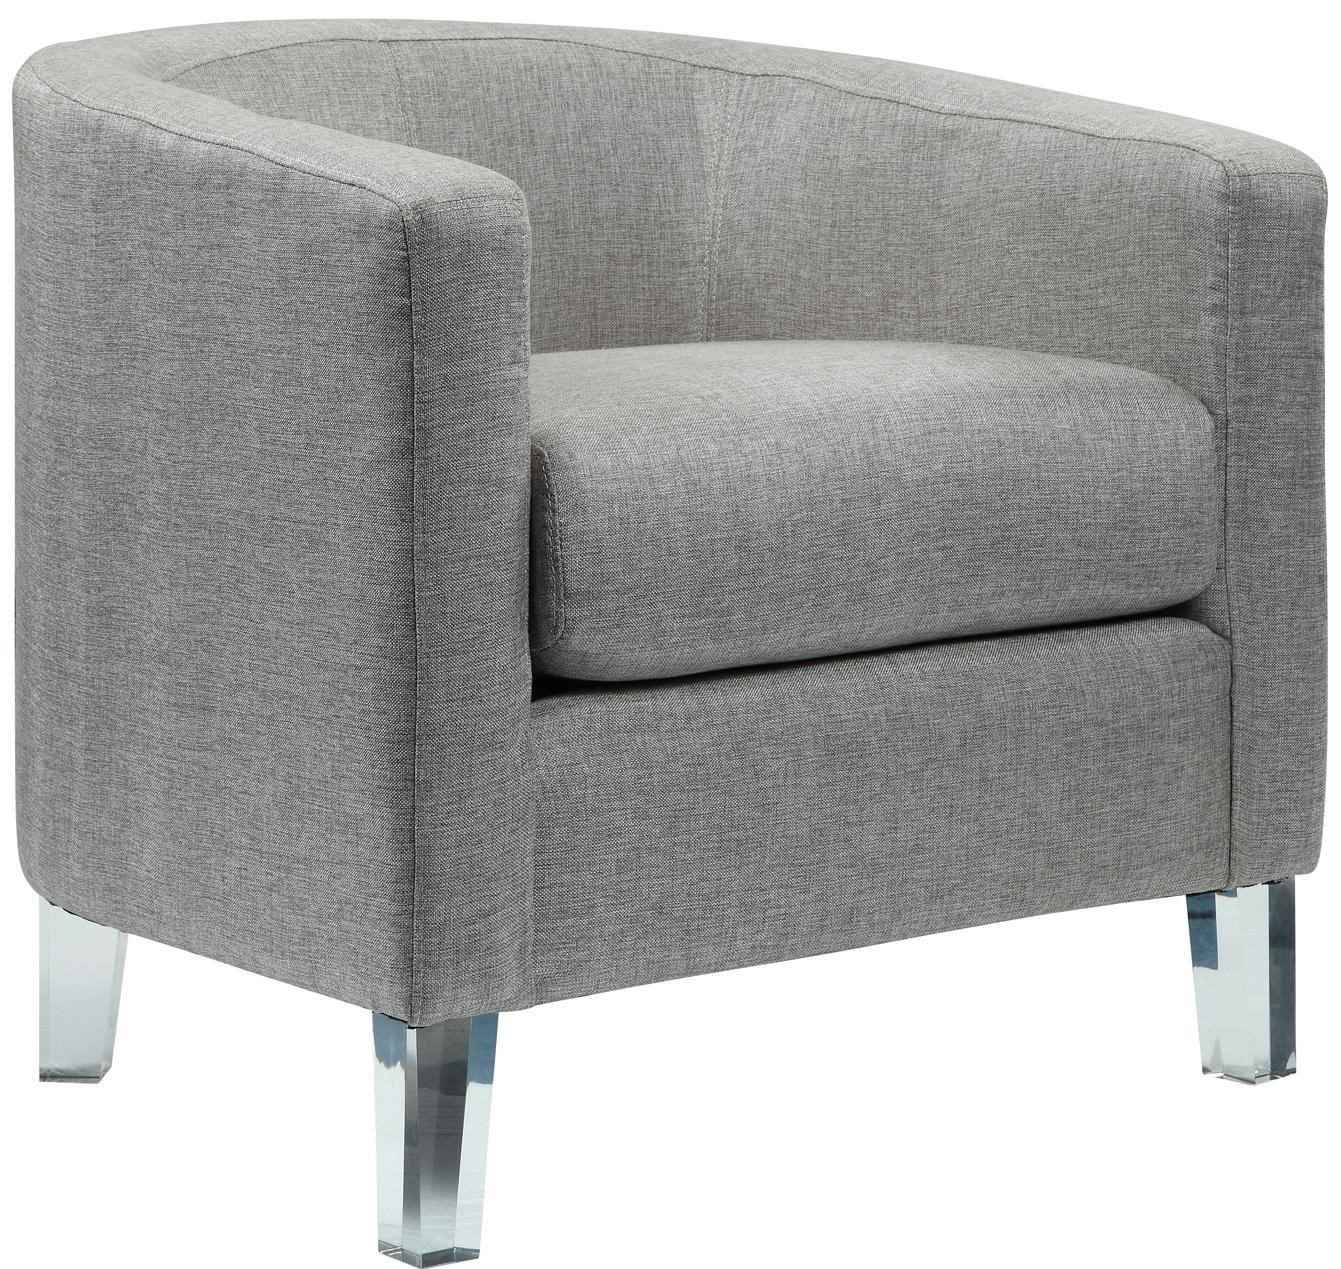 tub accent chair steel wwe elements international durian modern with acrylic legs